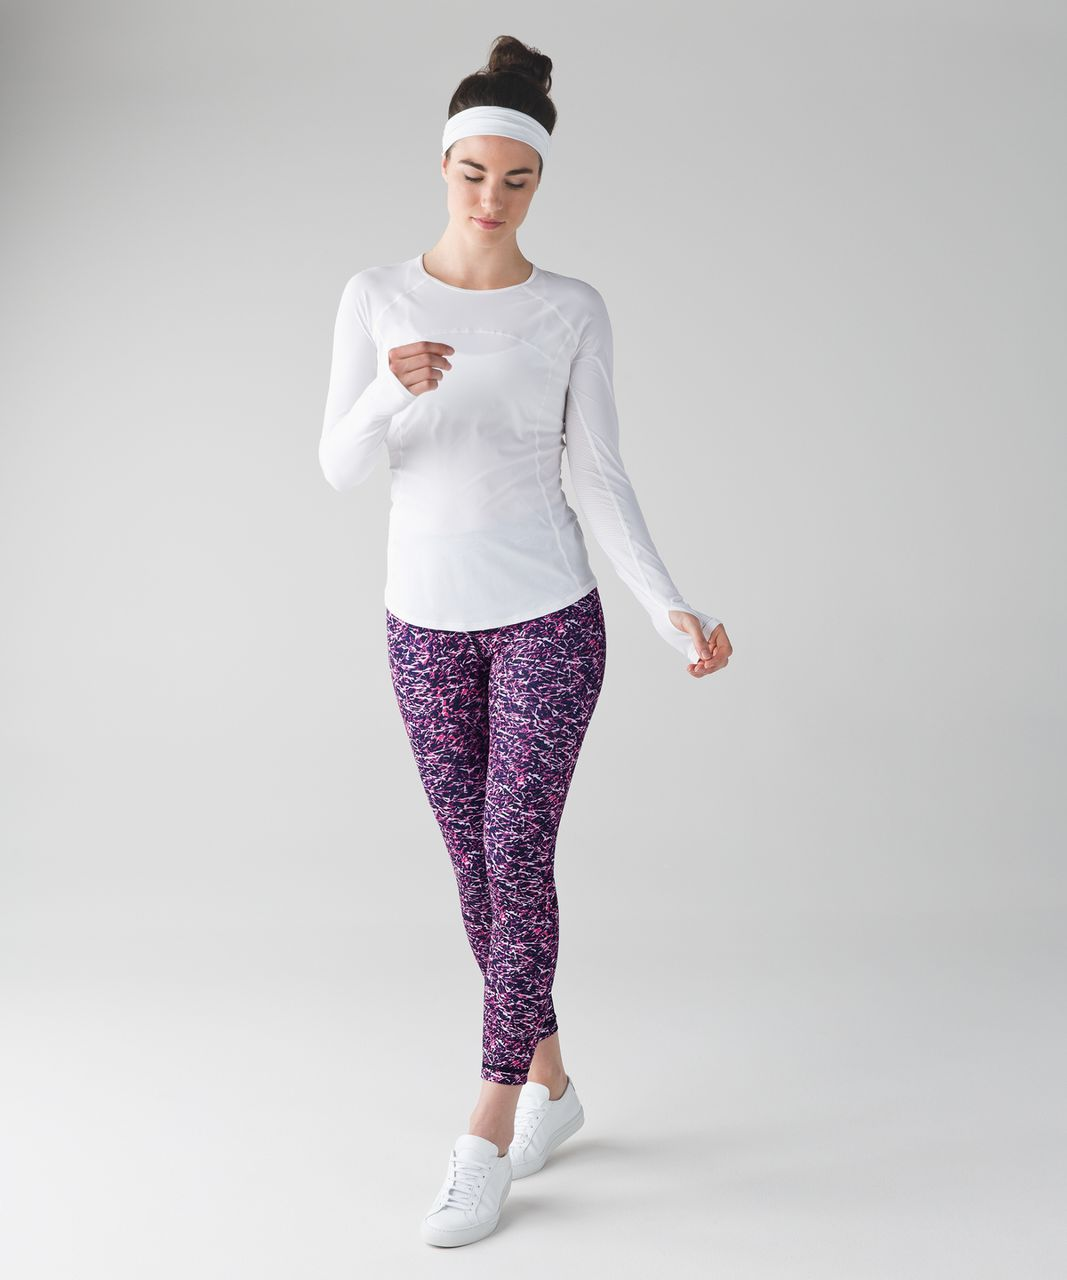 Lululemon High Times Pant - Mini Ripple Boom Juice Multi